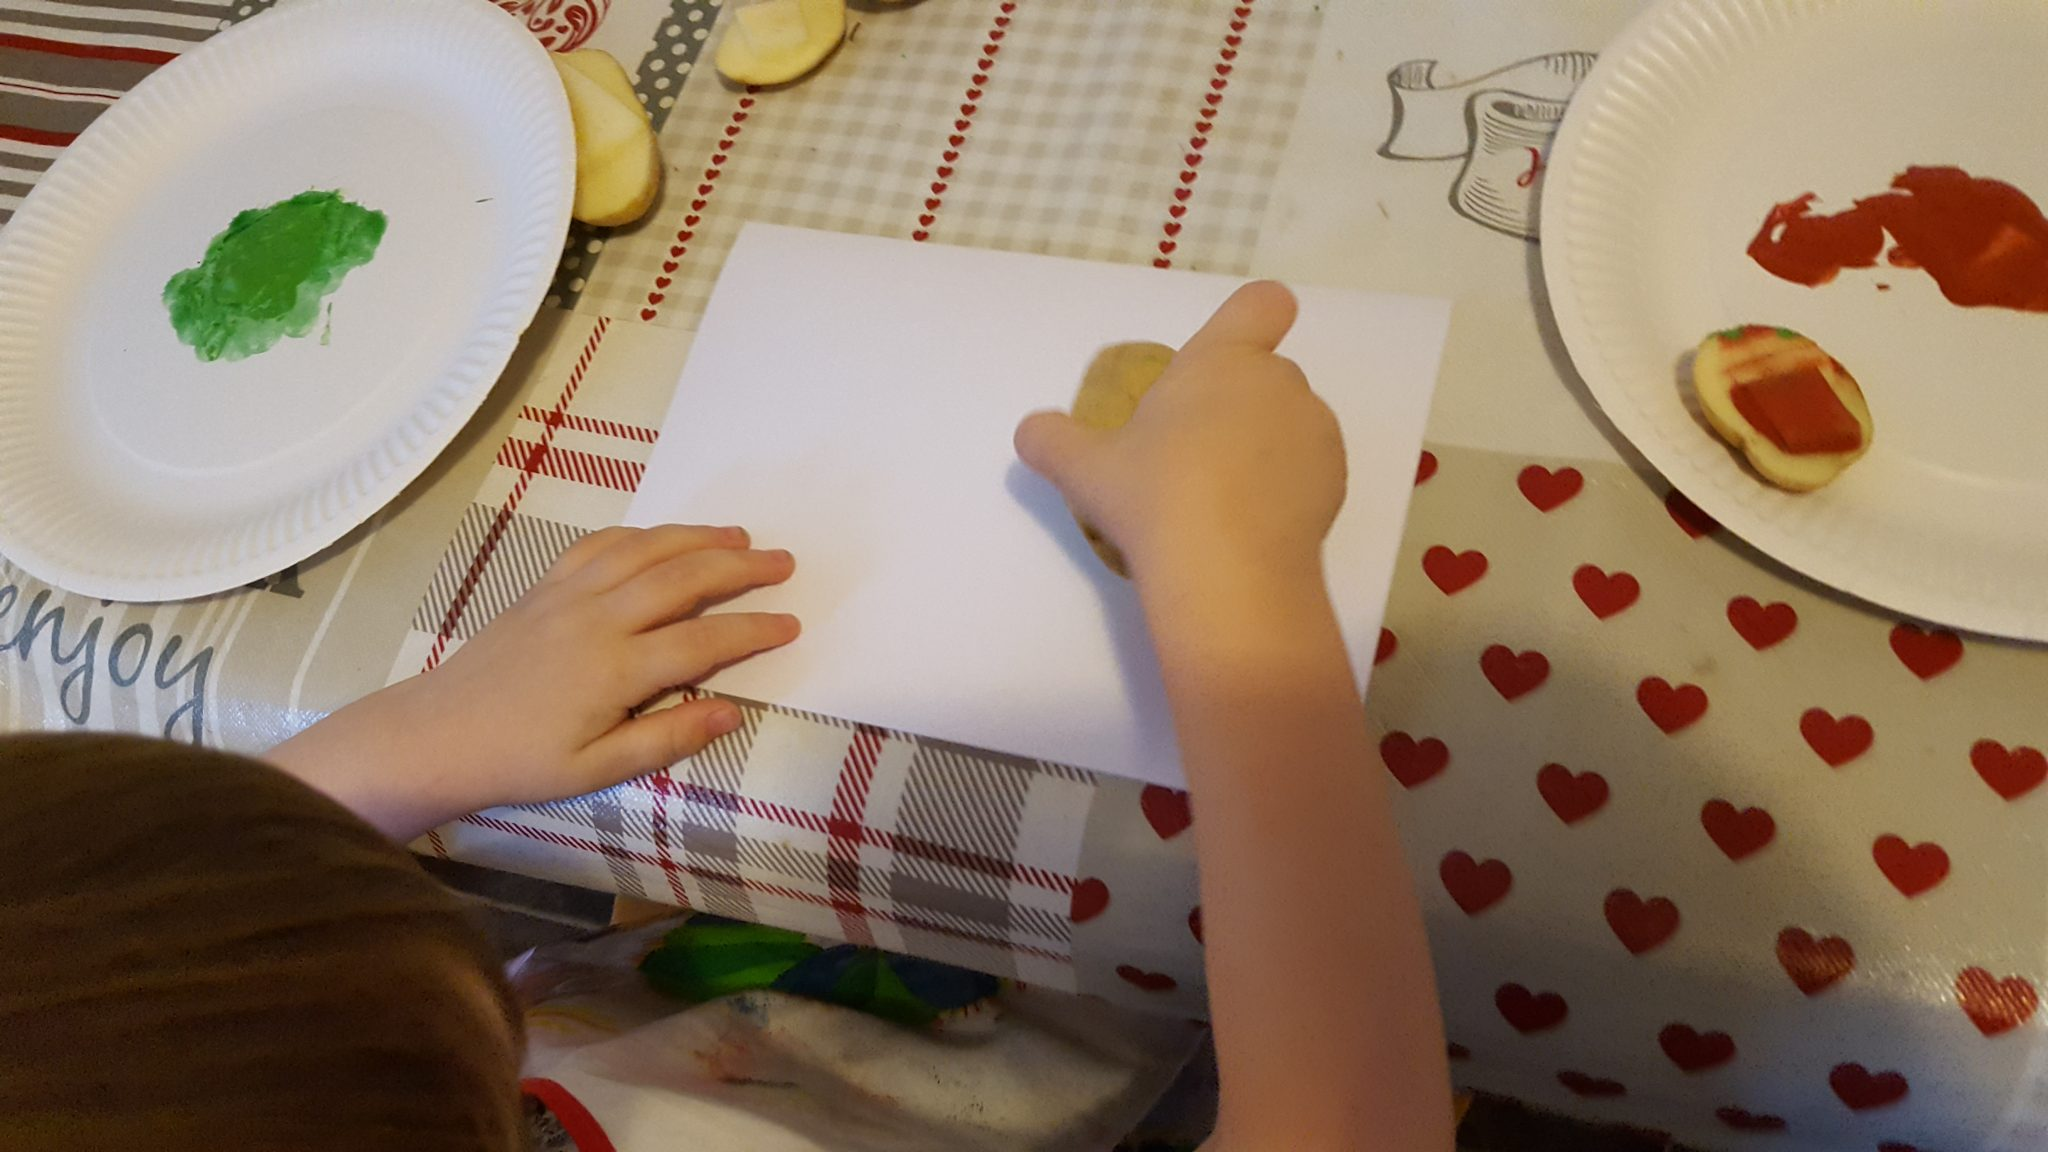 The boys all really loved to make the cards. All you need is 2 potatoes cut into shapes.